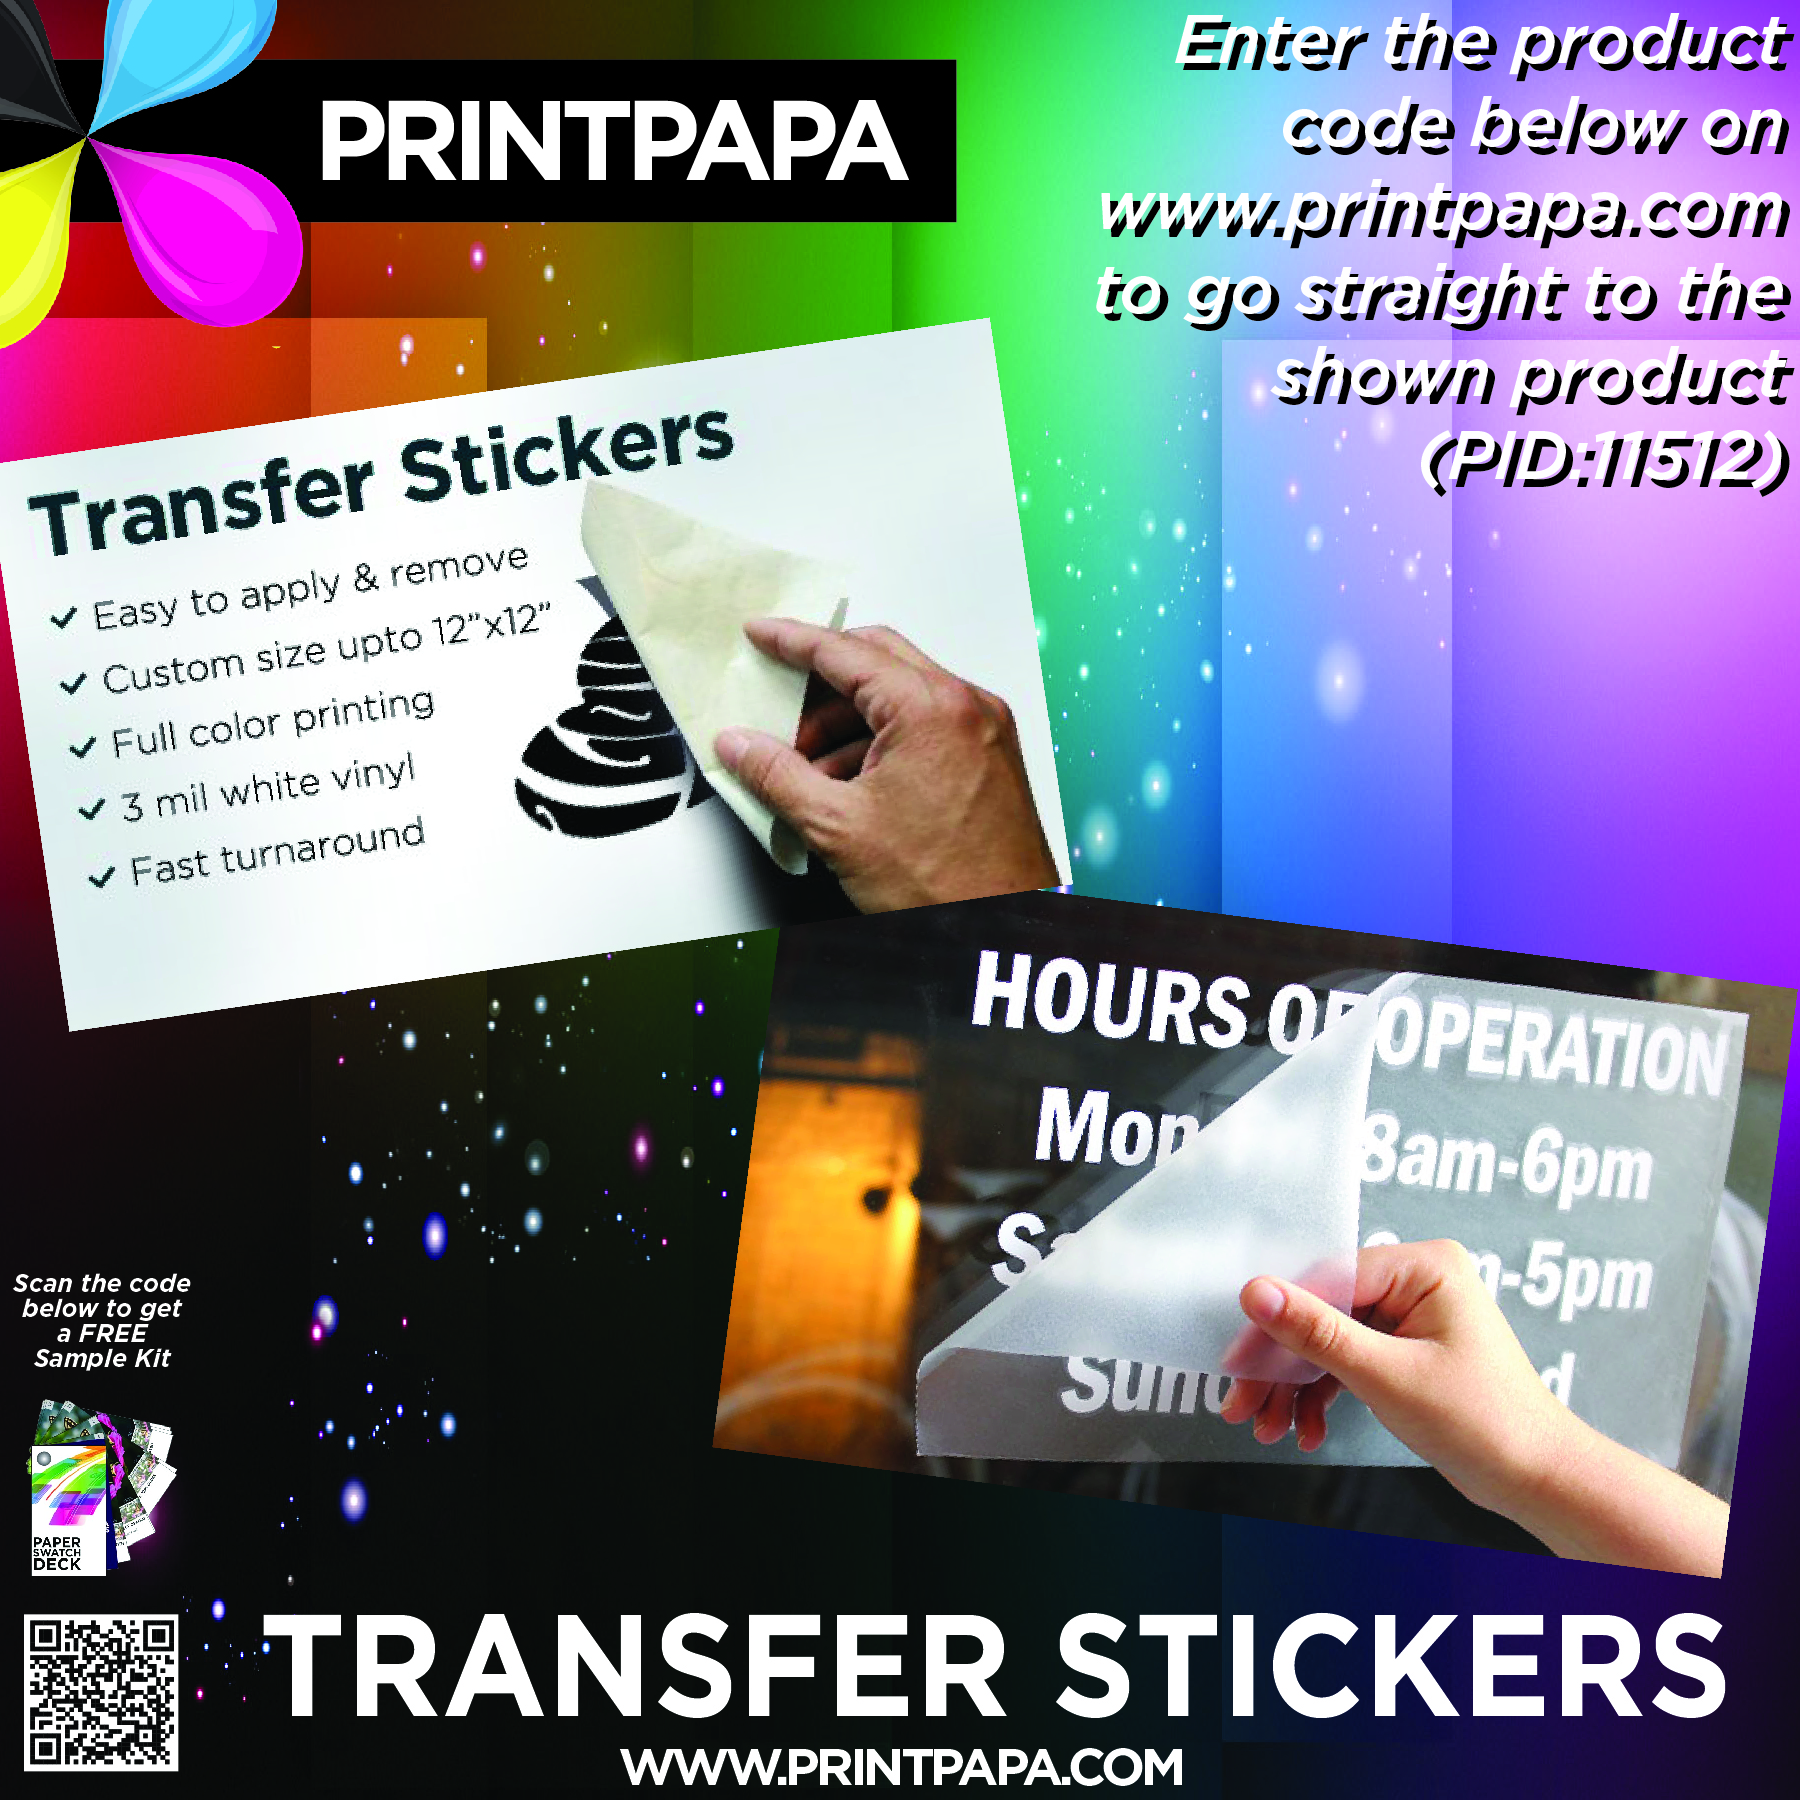 Full color printing company - Our Transfer Stickers Are Made By Printing Your Design In Full Color On 3 Mil White Vinyl And Then Any Part Of The Design That Is Transparent Will Be Cut